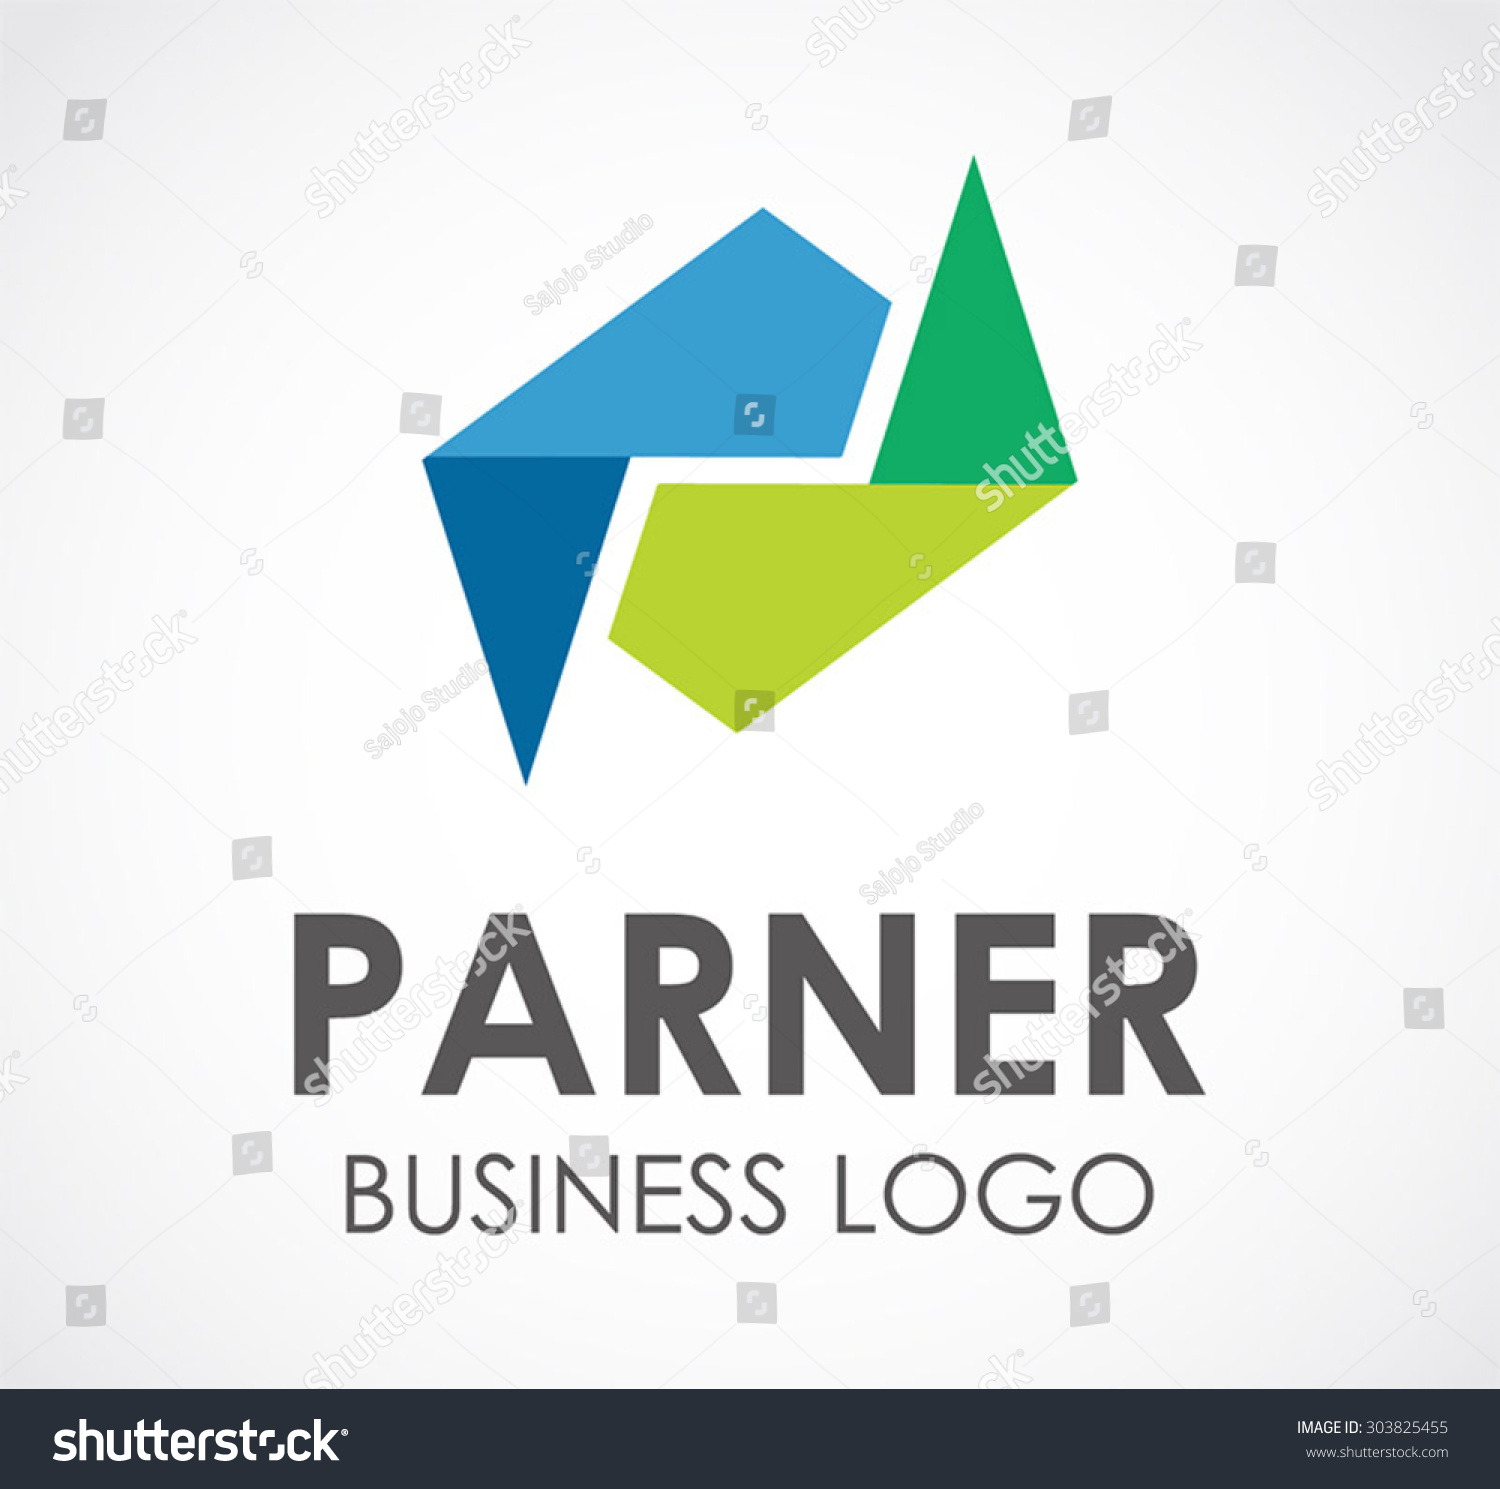 Partnership business connect group abstract vector stock vector partnership business connect group abstract vector logo design template community unity company icon corporate identity symbol sciox Gallery